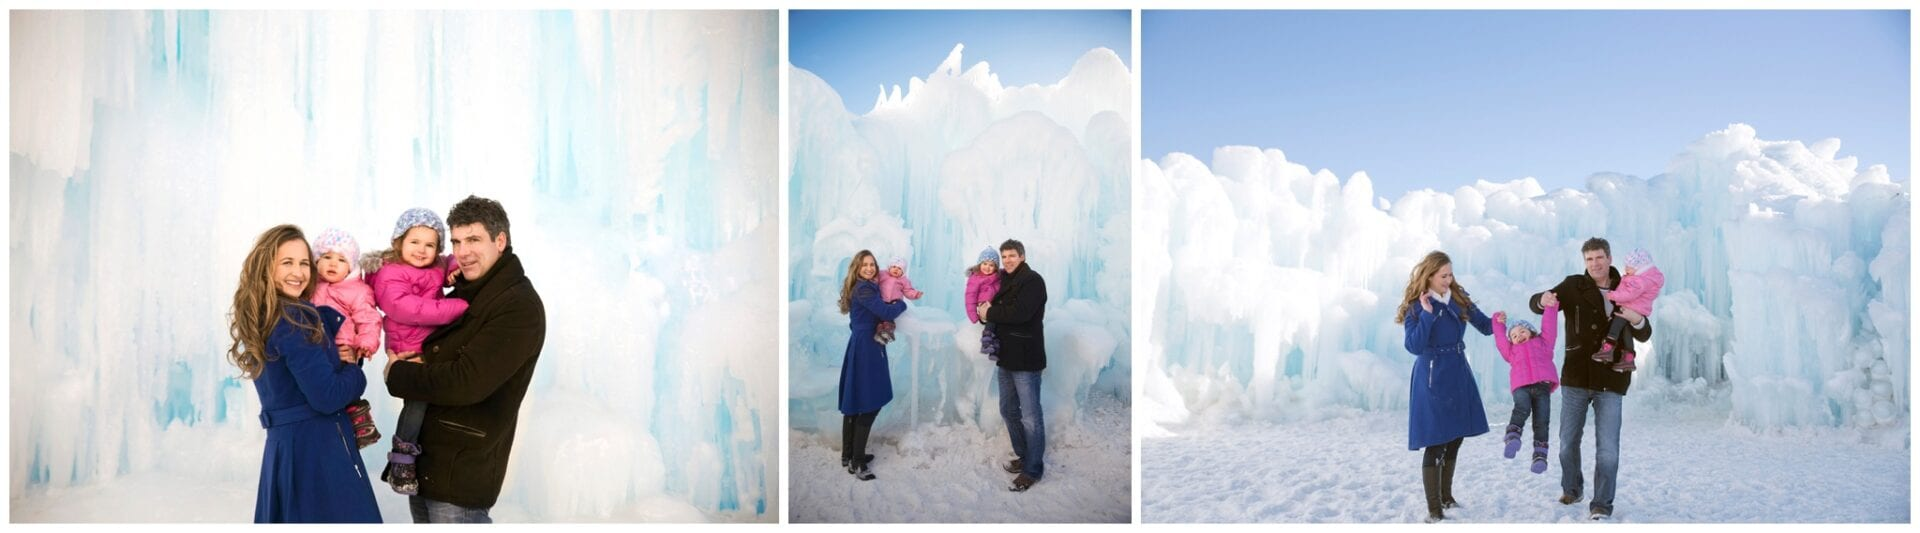 Edmonton Winter Family Outdoor Portrait Photography at the Ice Castles